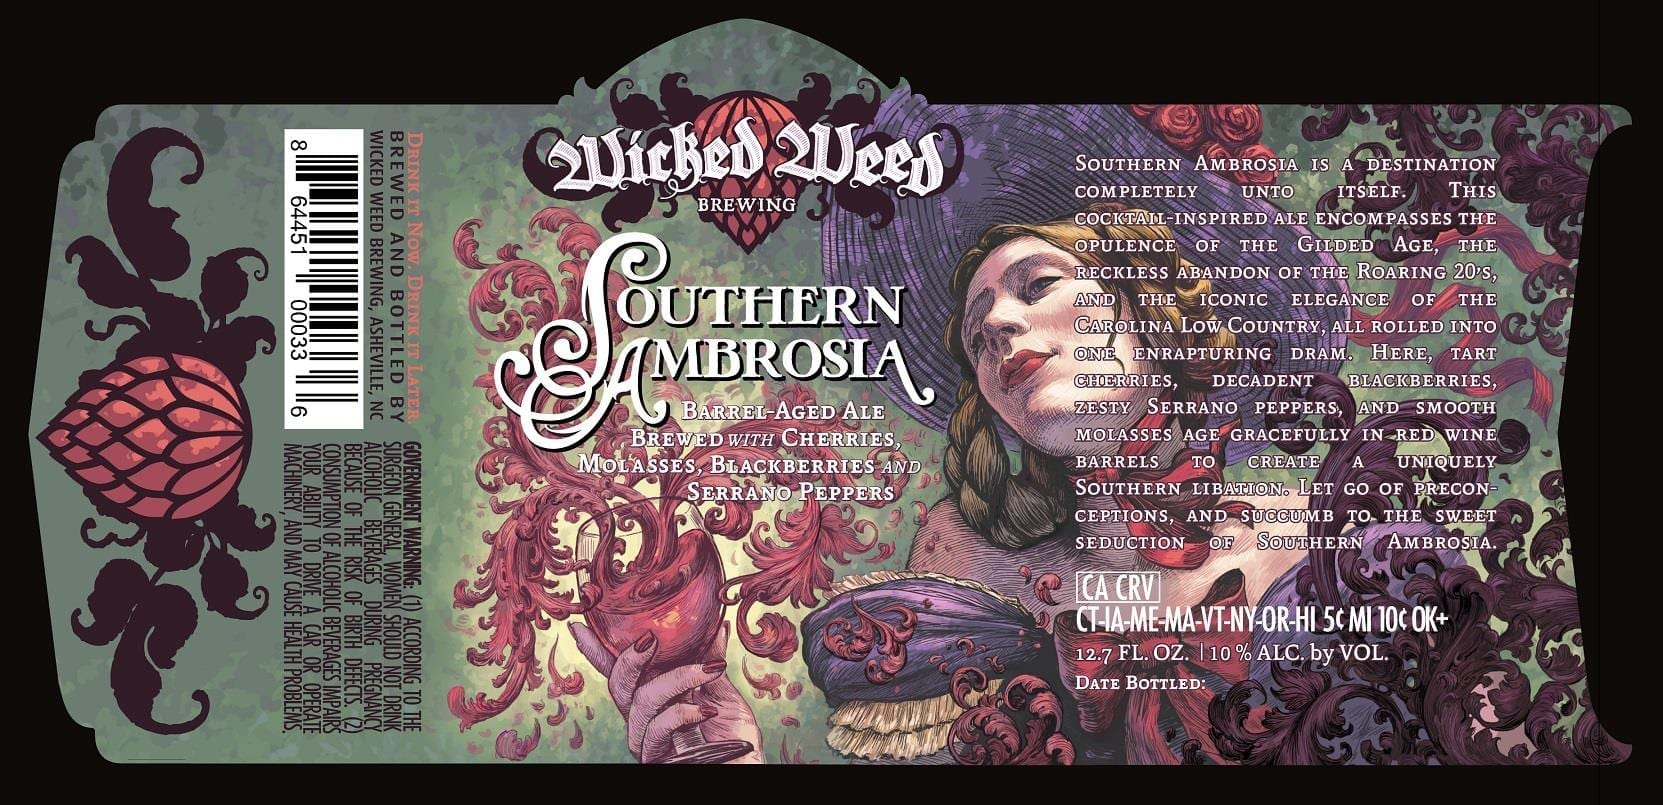 Wicked Weed Brewing Southern Ambrosia Label